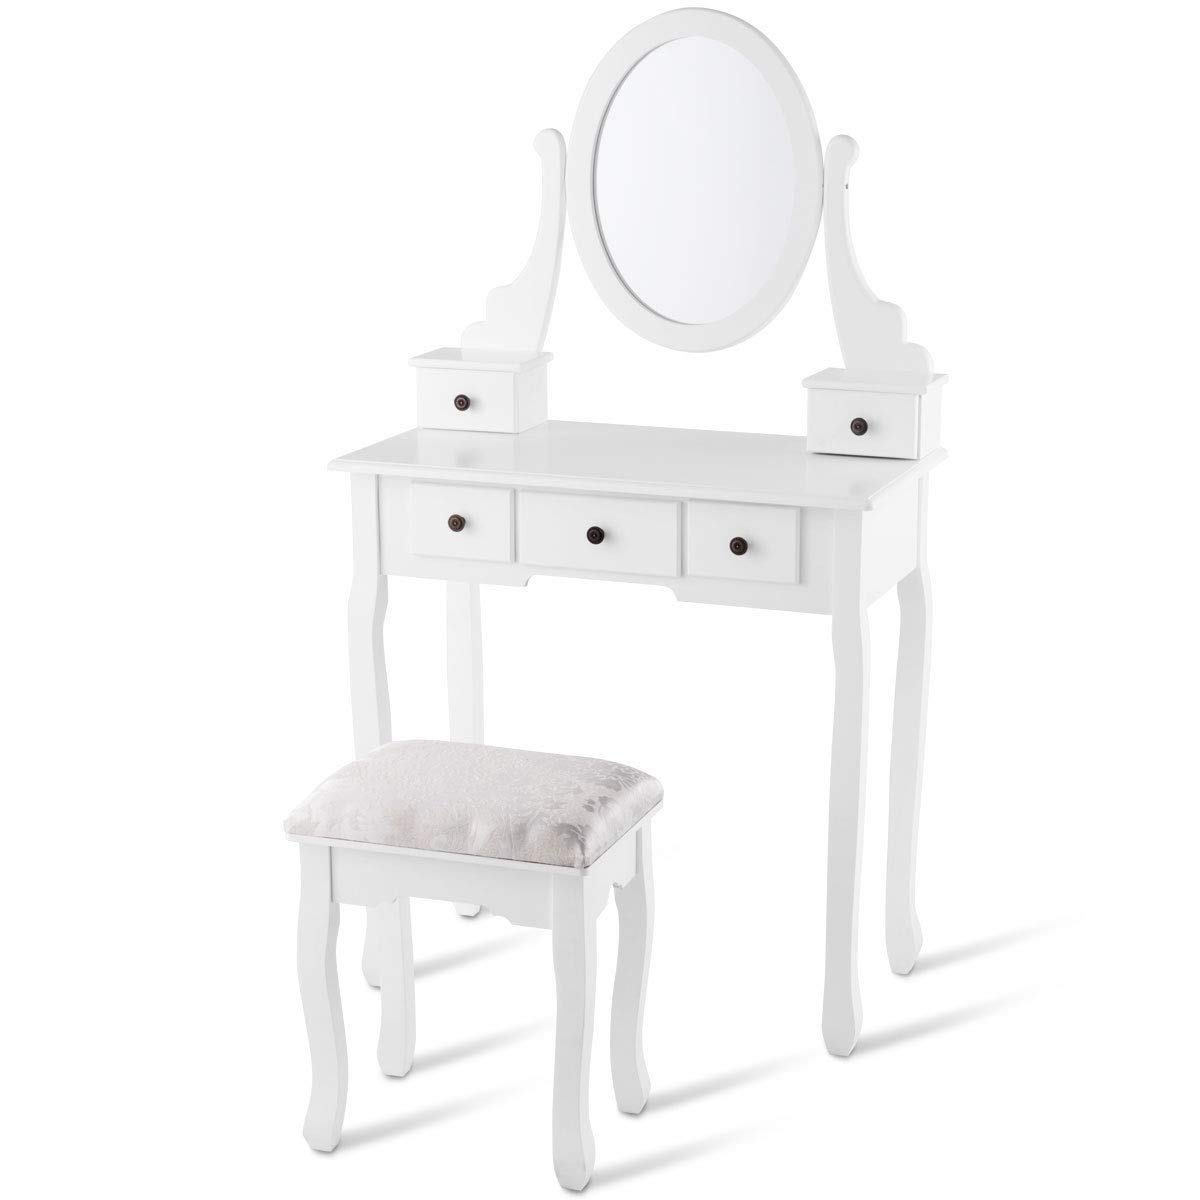 USA_Best_Seller White Modern Compact Contemporary Dressing Table Set with Oval Mirror, Stool and 5 Storage Drawers Organizer Jewelry Cosmetics Holder Display Bedroom Furniture by USA_Best_Seller